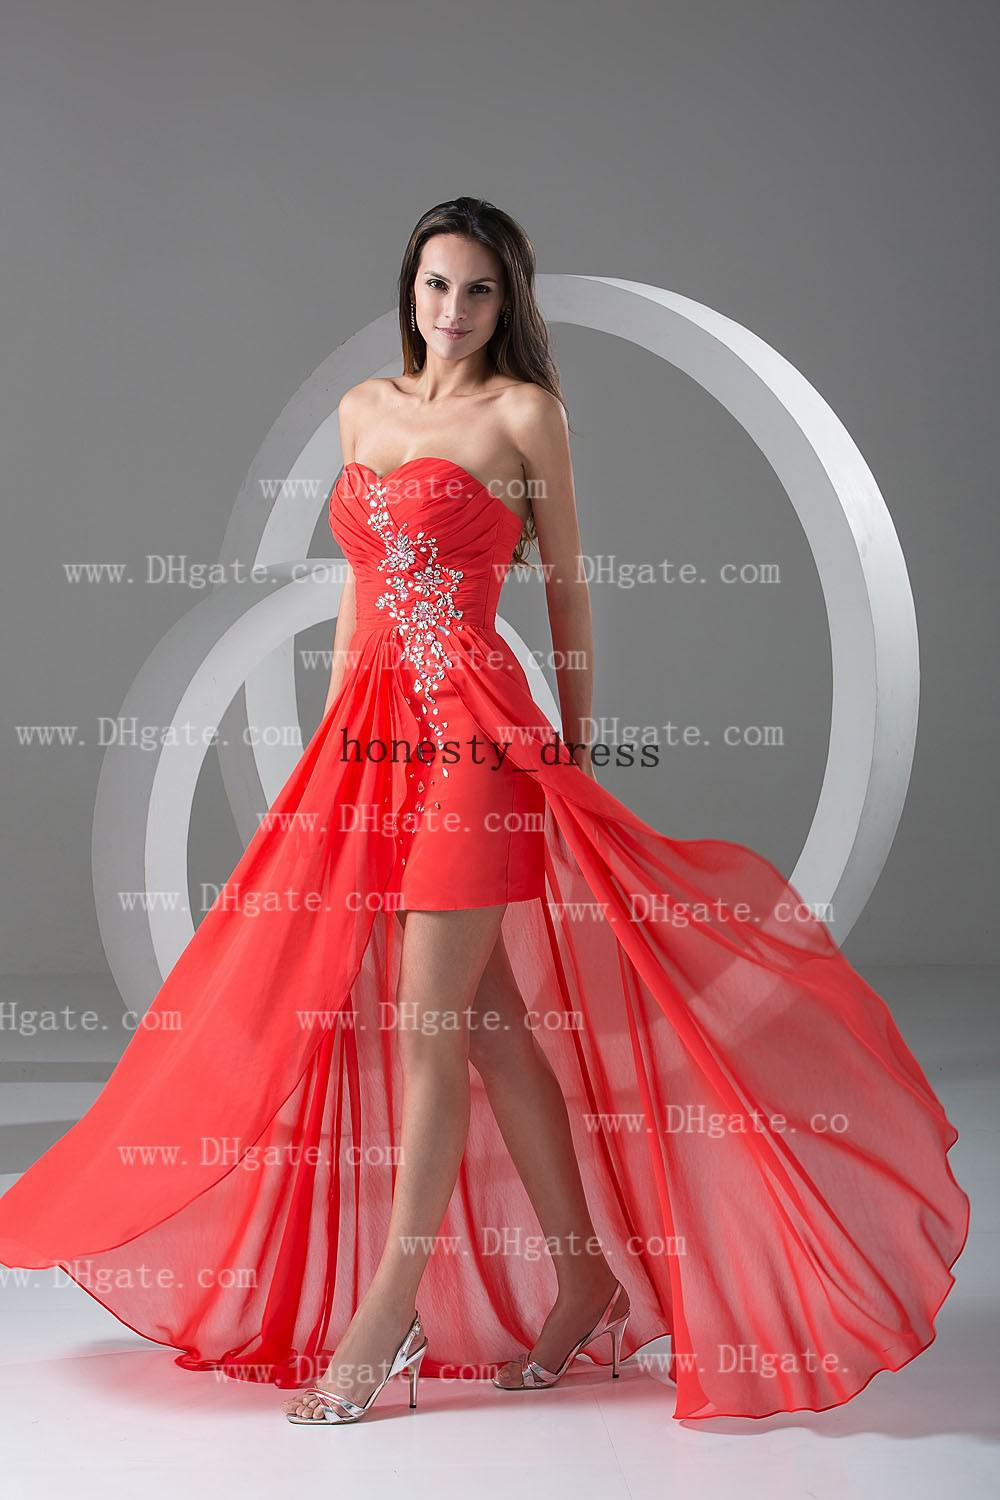 2016 Chic Salmon Pink Sheath Side Drapes Hi Lo Prom Dress ... Salmon Prom Dresses 2013